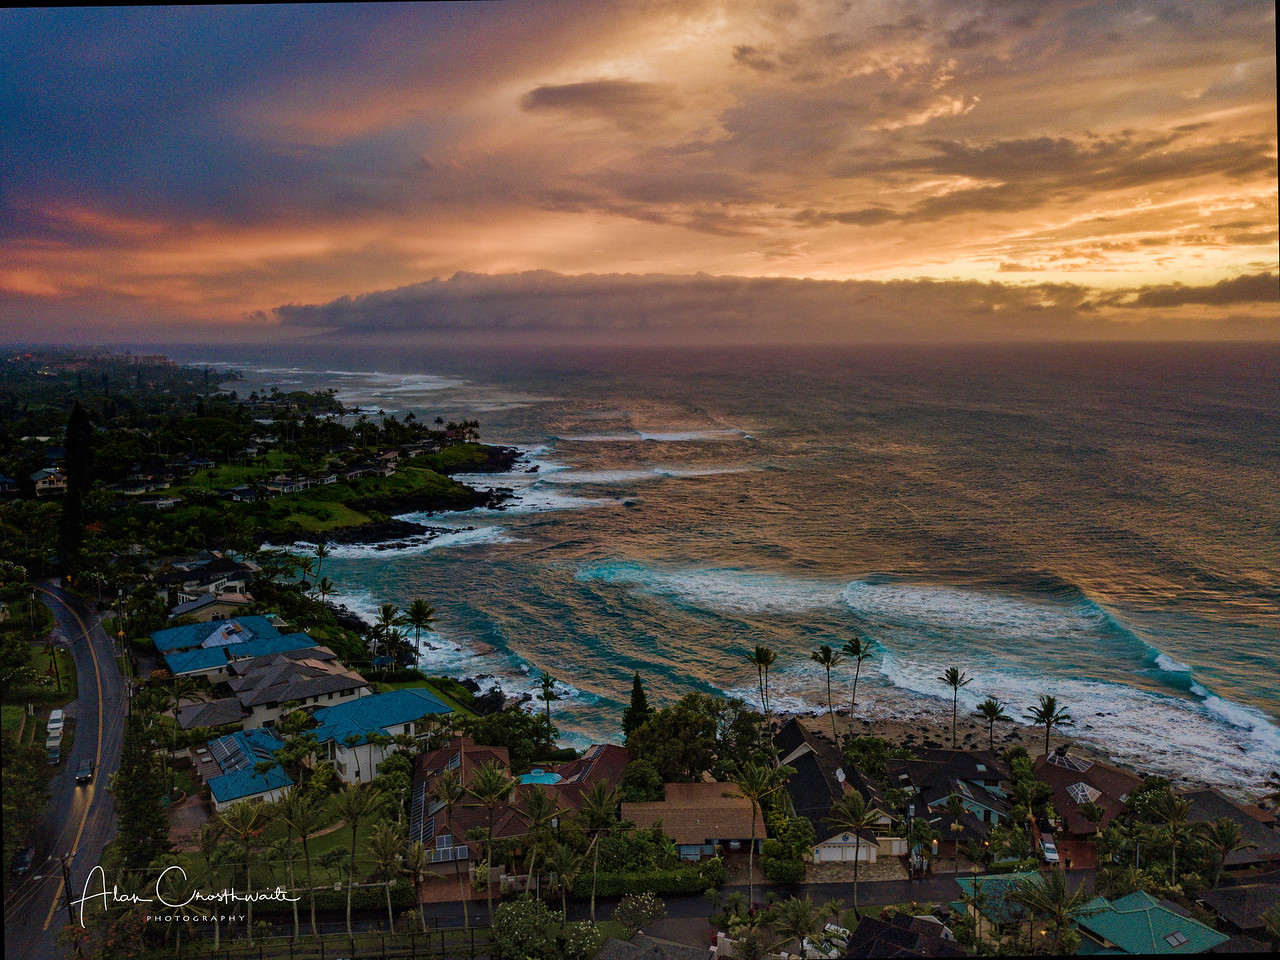 Weather onshore in Maui, Hawaii